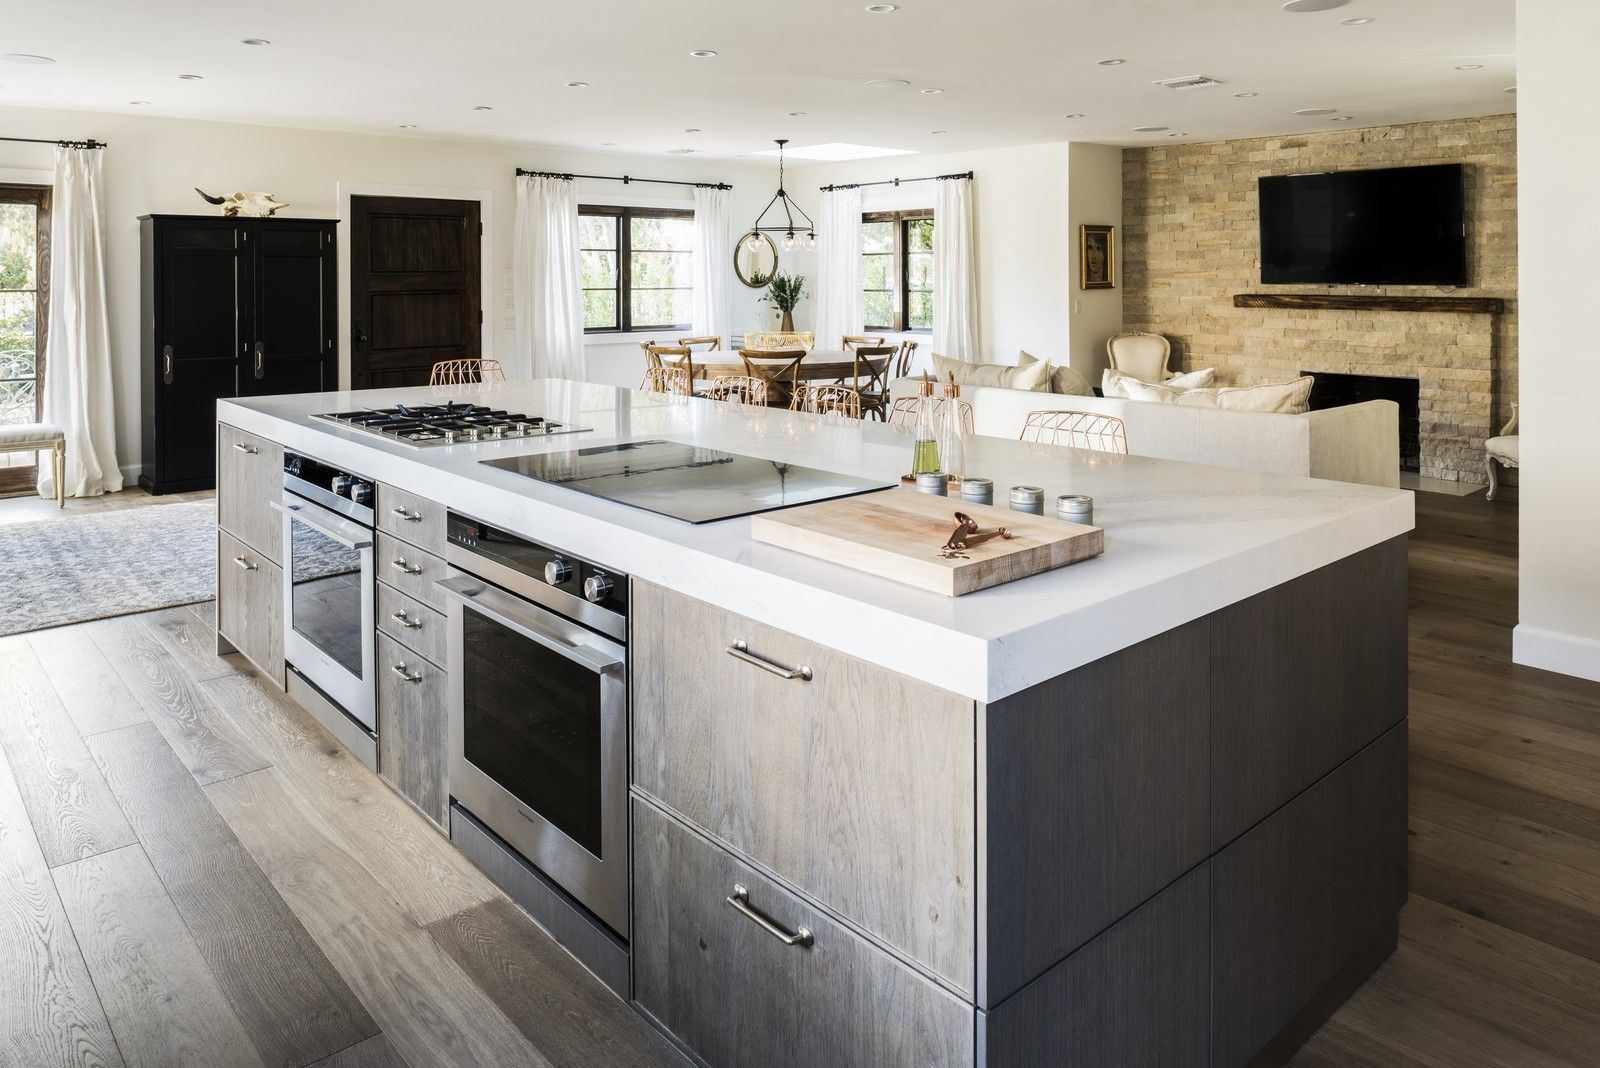 chef ludo lefebvre s modern kitchen with rustic roots in 2020 modern kitchen island kitchen on kitchen island id=78899